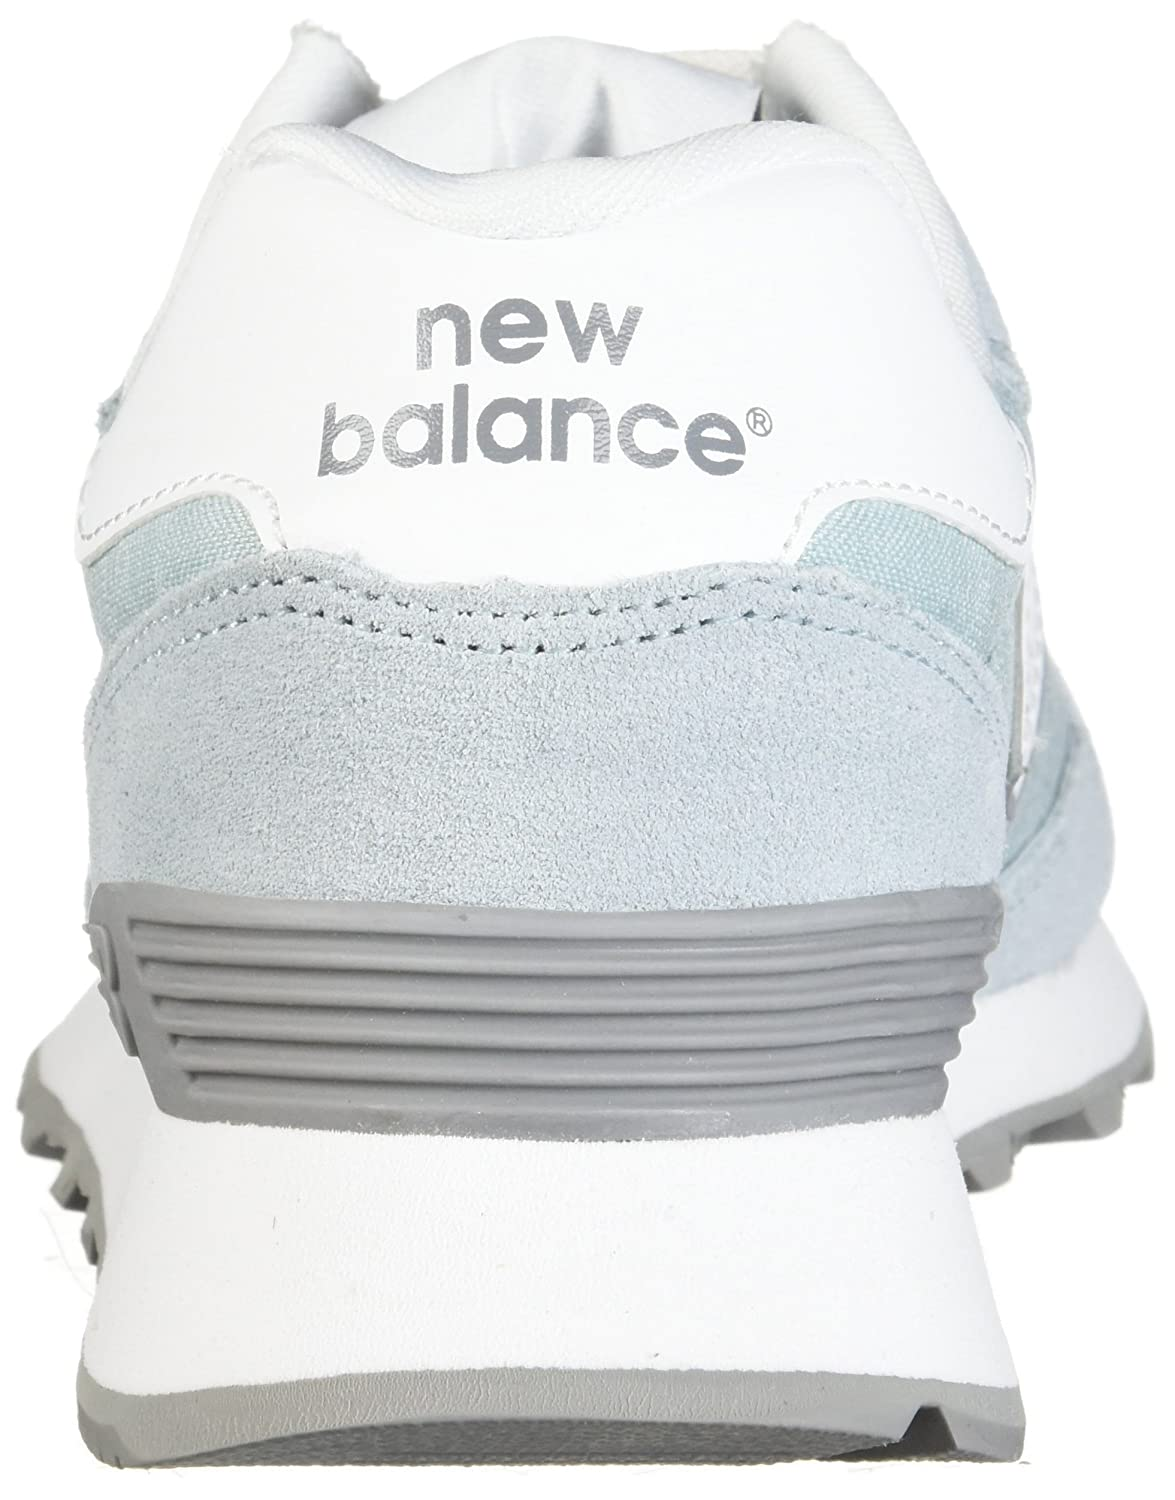 New Balance Women's 515v1 Lifestyle Sneaker B0751QV1F7 7 B(M) US|Lake Blue/Steel